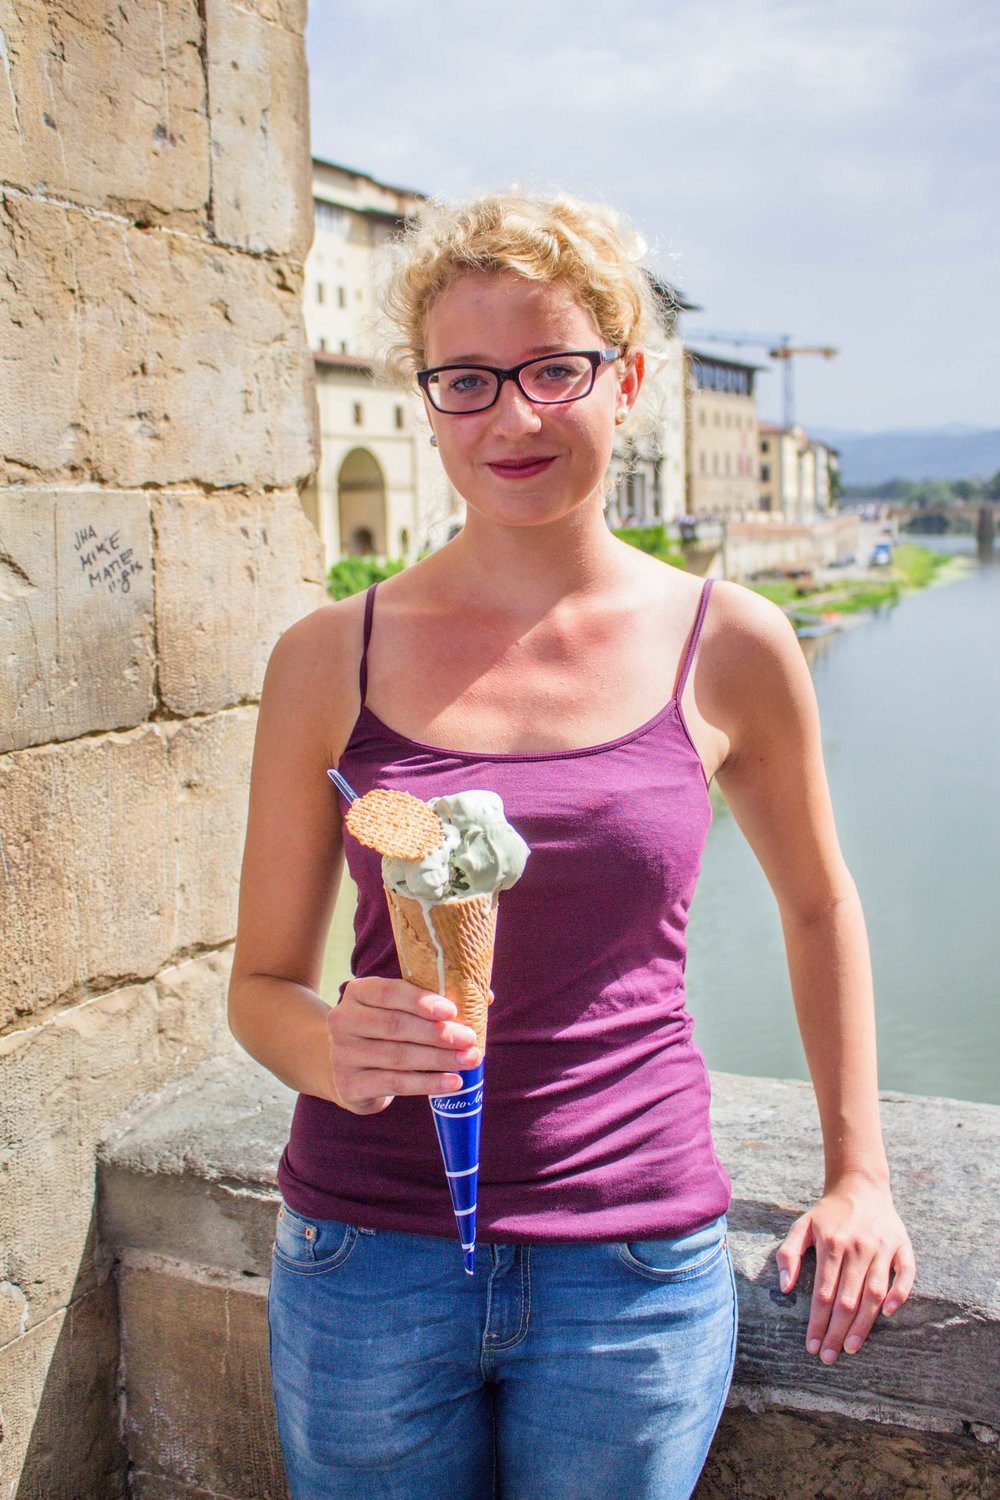 Girl-with-Gelato.jpg